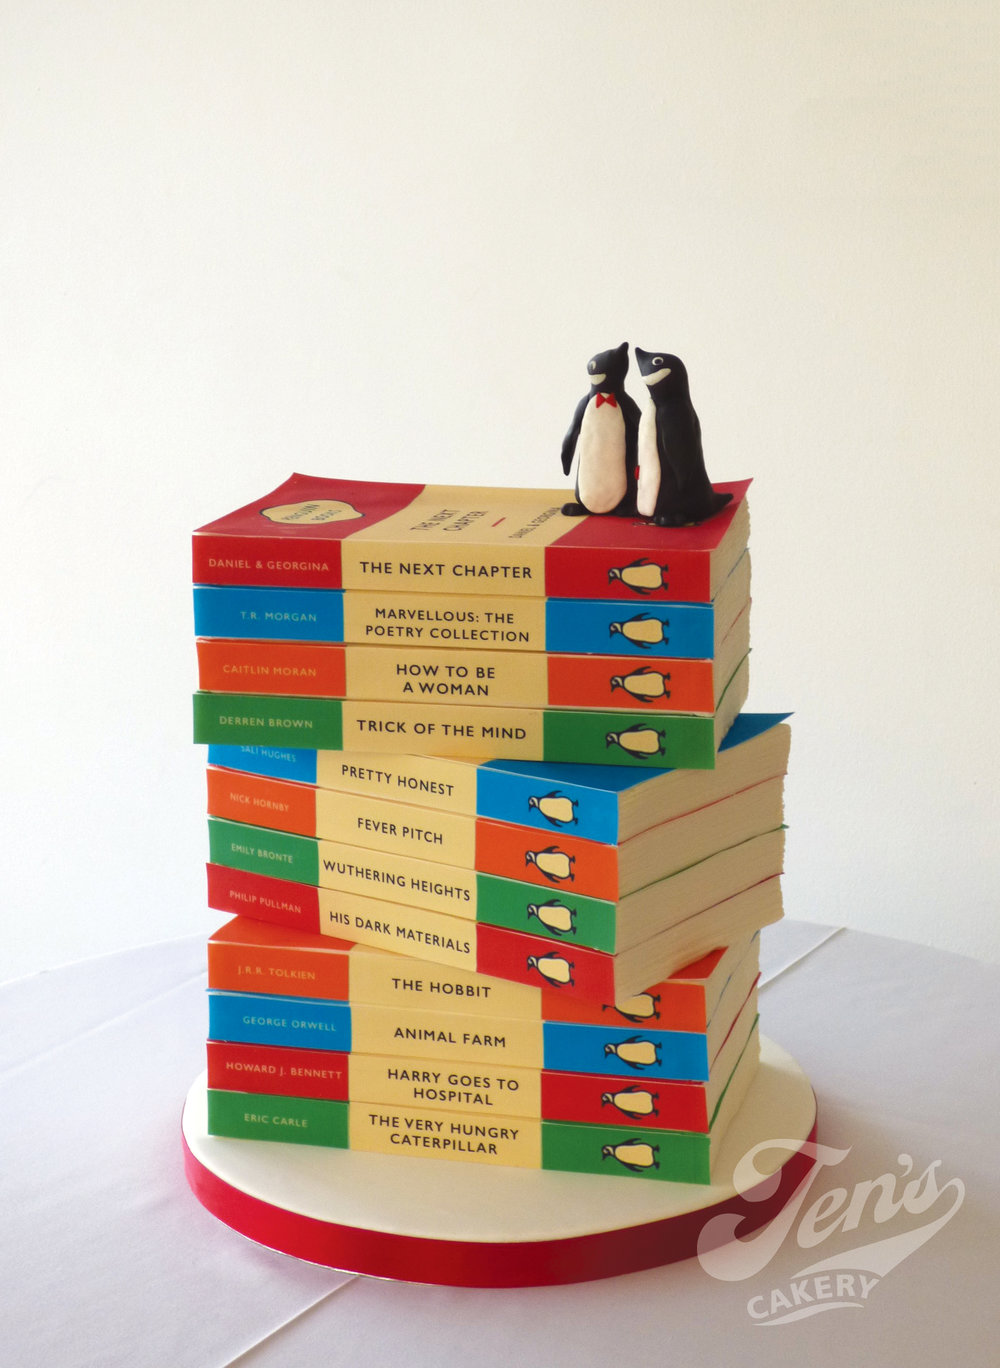 An illusion wedding cake that looks like a pile of penguin classic novels, perfect for book lovers! Here in the garden room at Hampton Court Palace.